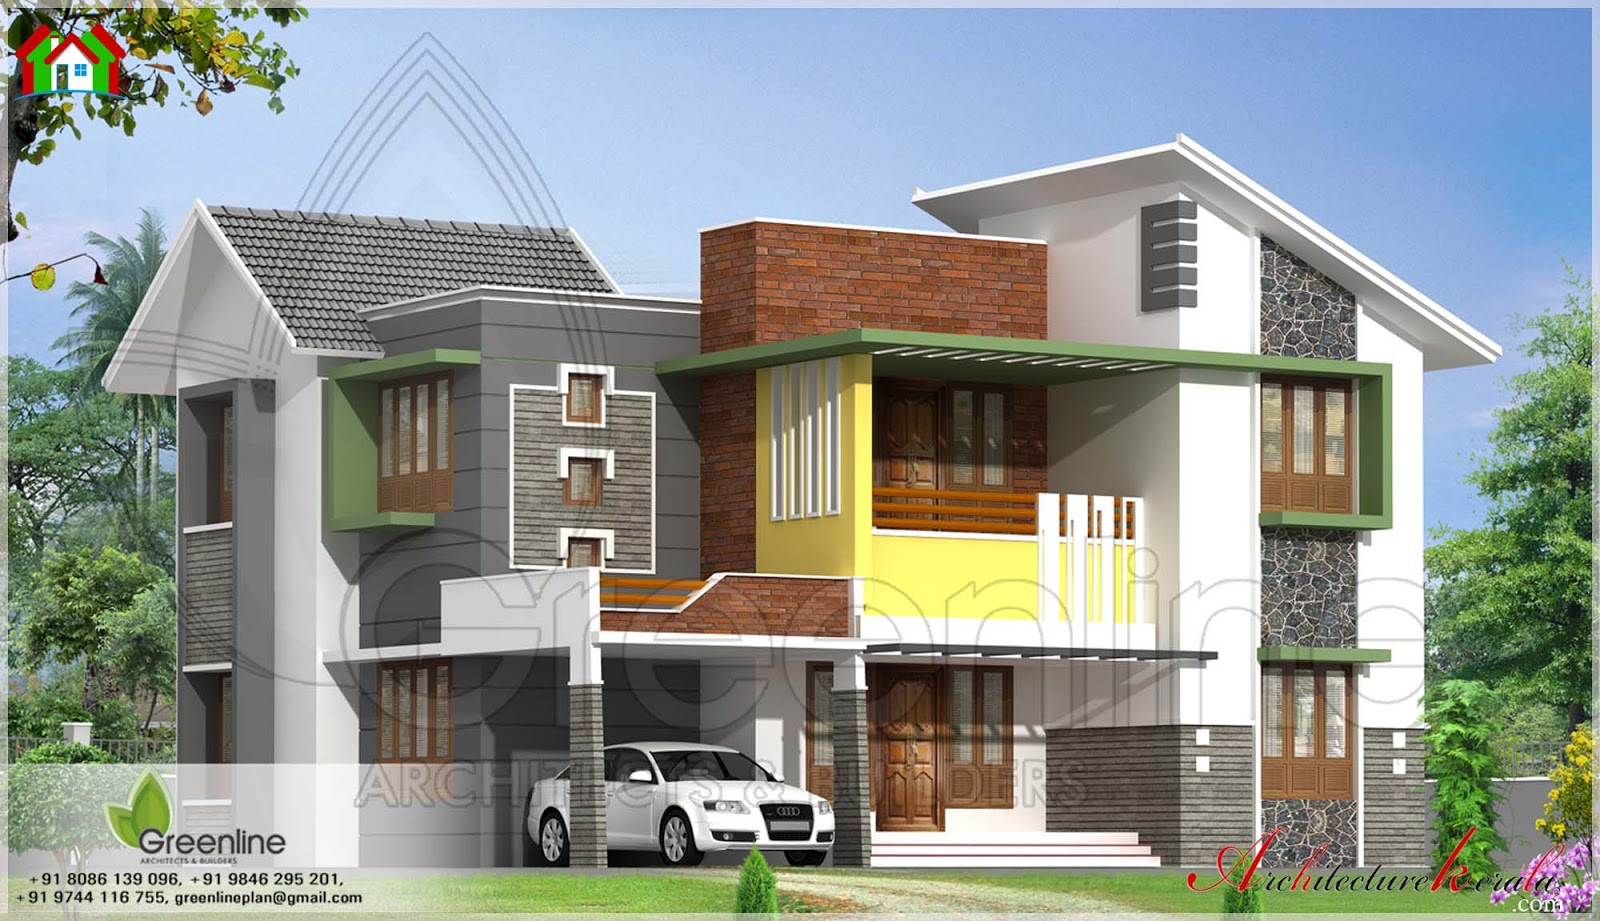 Modern style house elevation architecture kerala for Contemporary indian house elevations